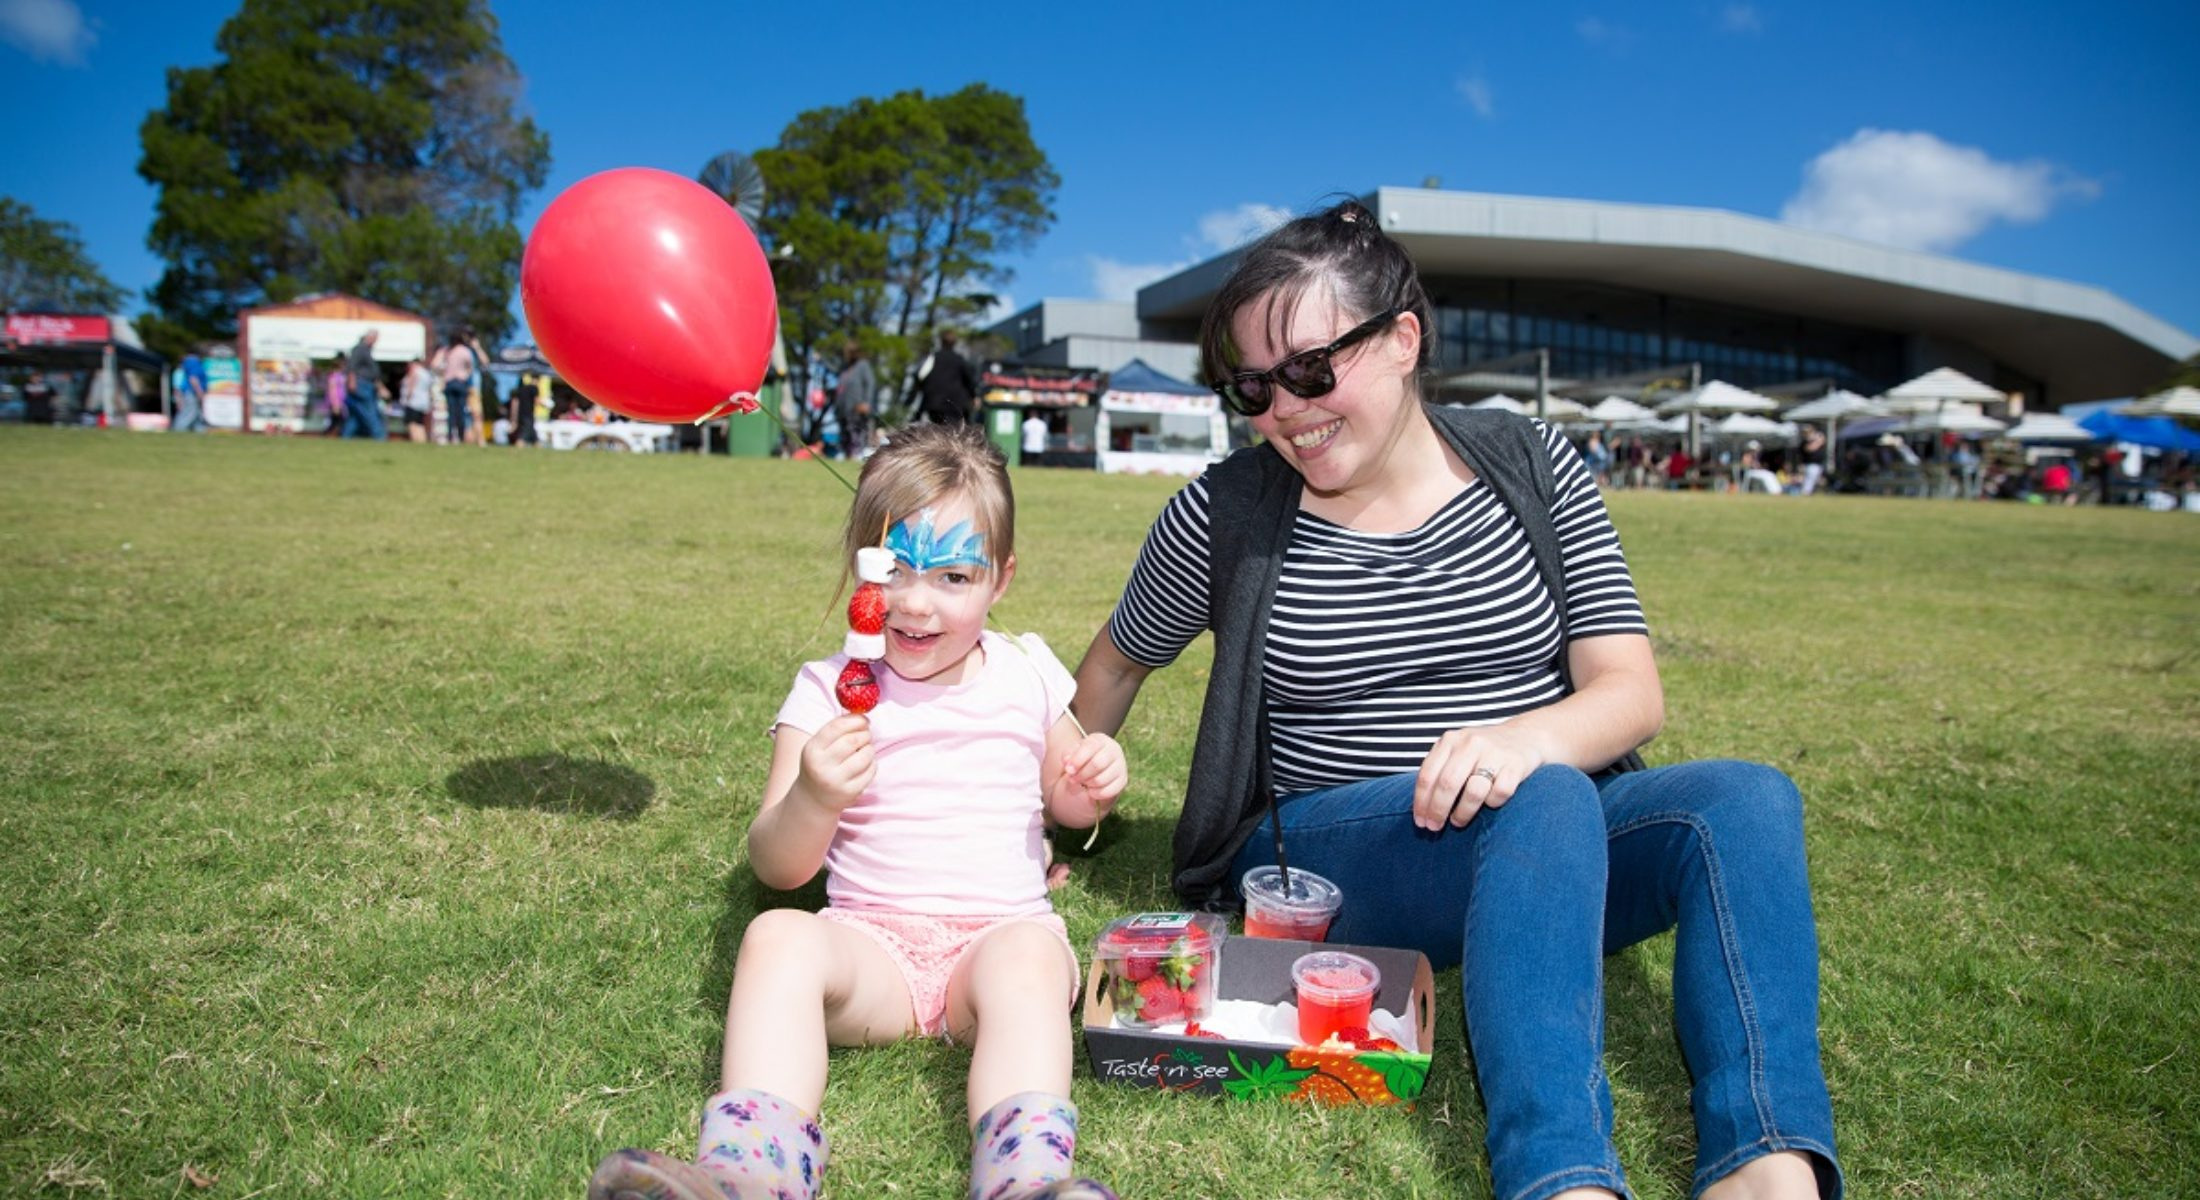 Sandstone Point Hotel Strawberry Festival Free Family Event Local Strawberries Moreton Bay Region